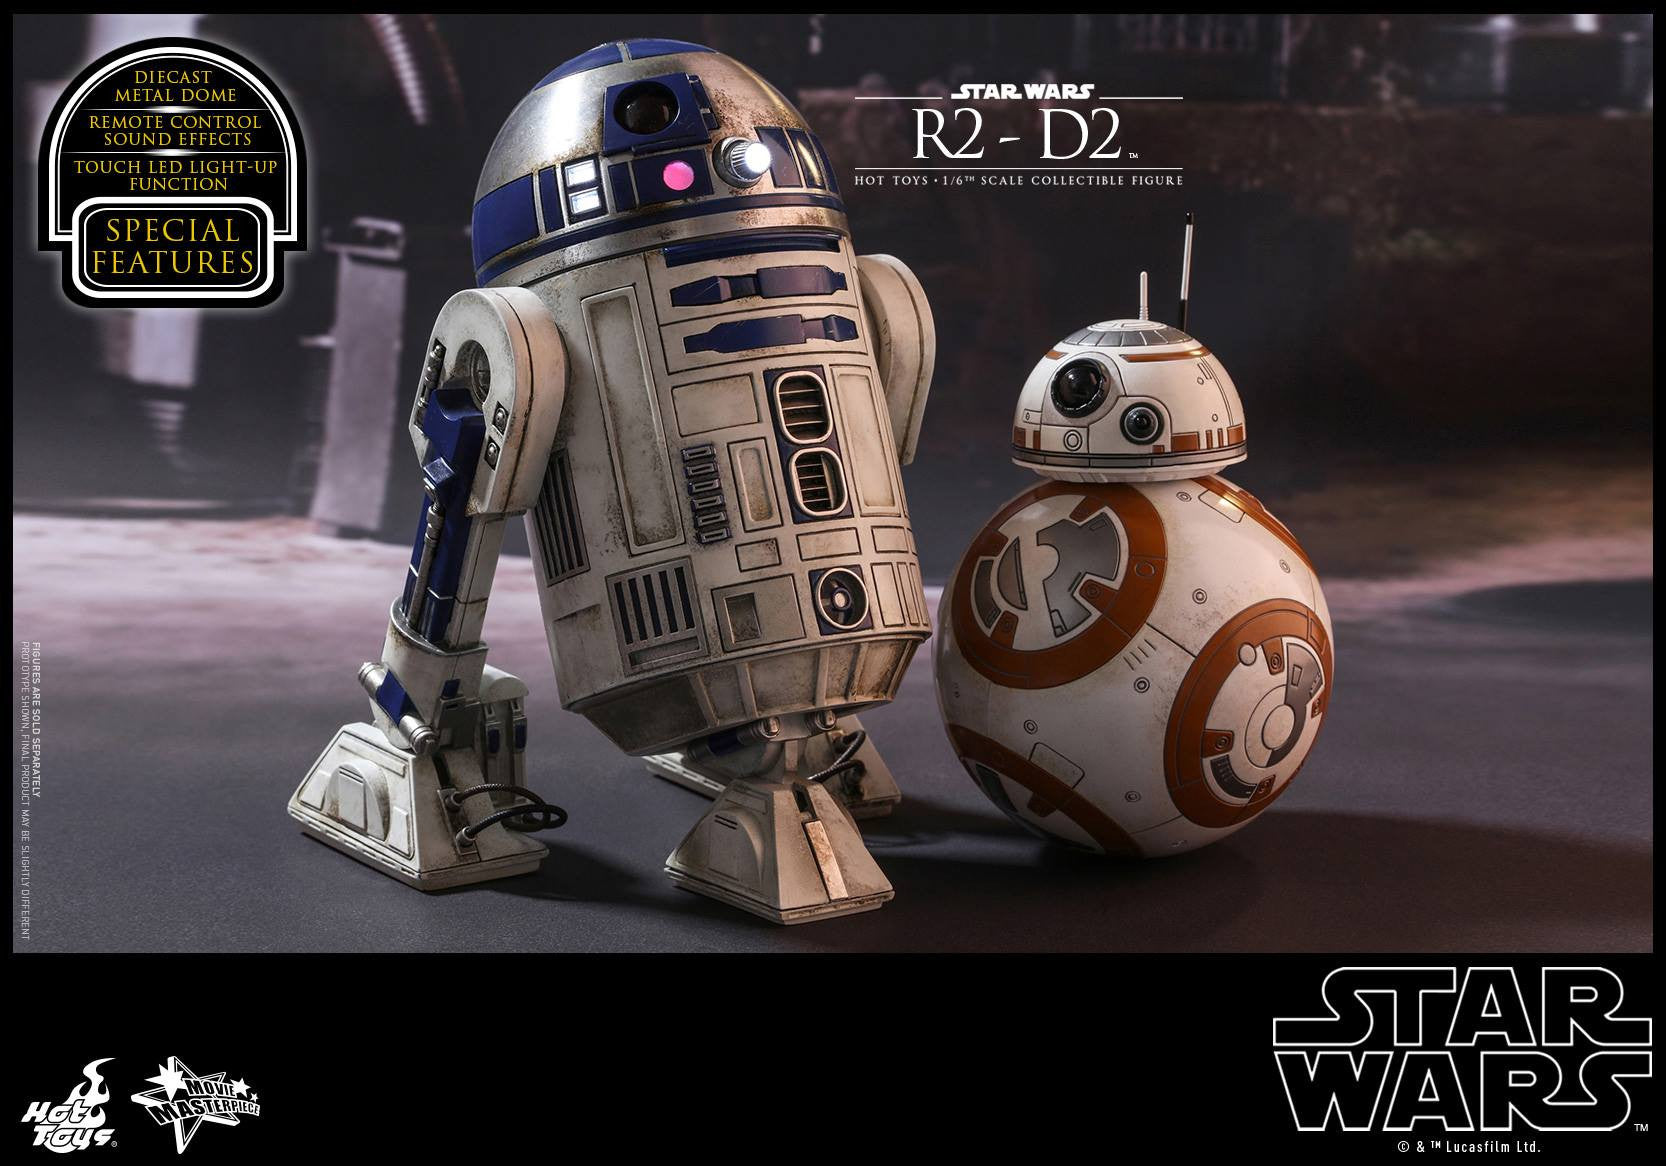 Hot Toys - MMS408 - Star Wars: The Force Awakens - R2-D2 - Marvelous Toys - 11